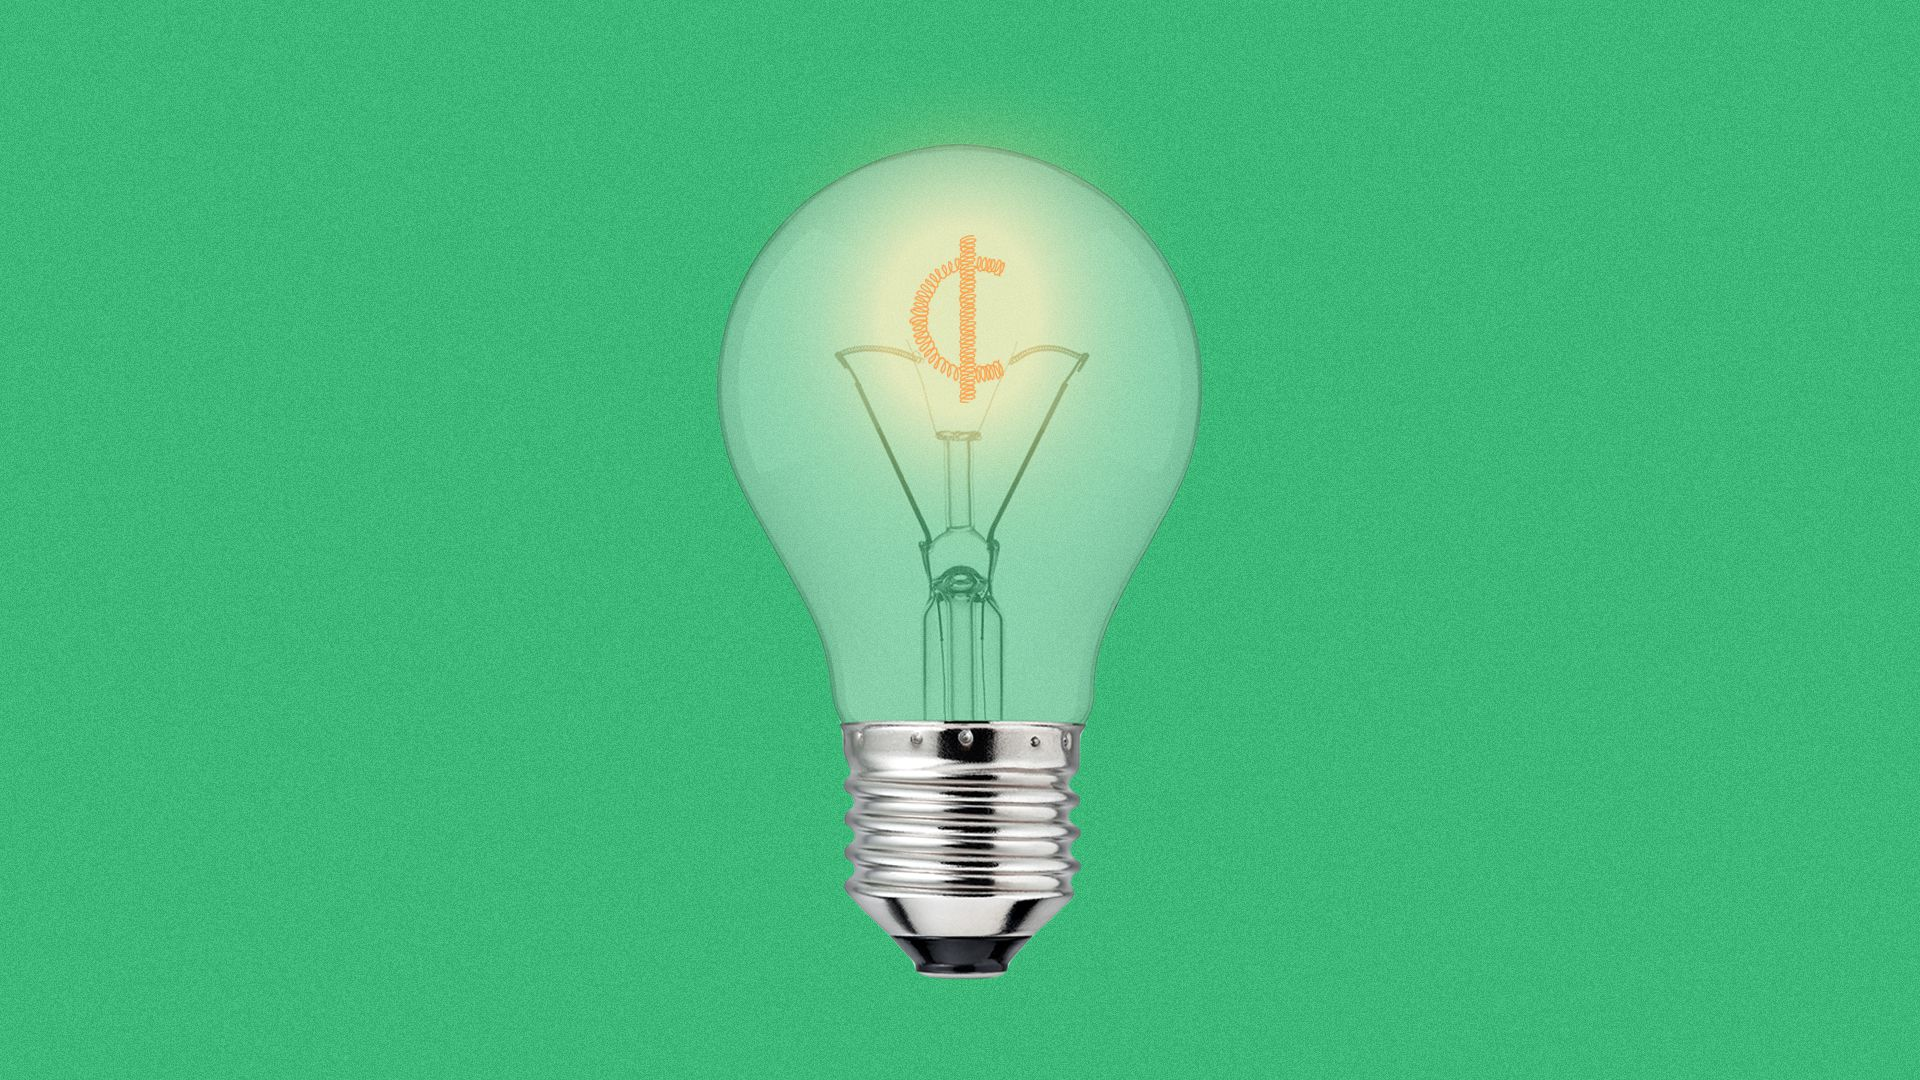 Illustration of a light bulb with the filament in the shape of a cent symbol.